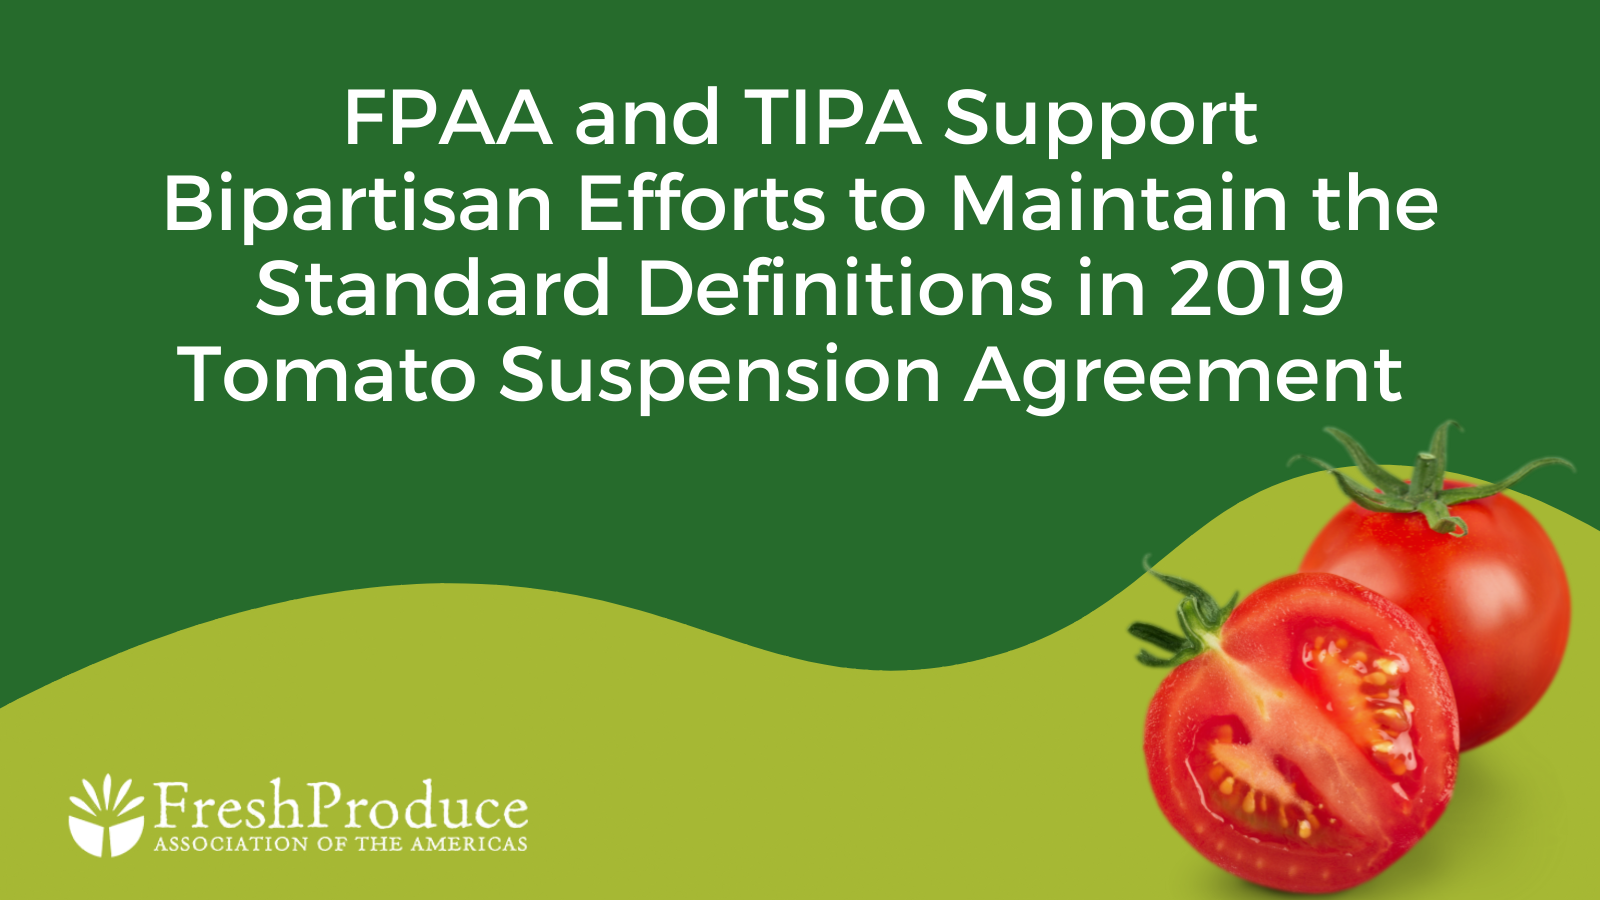 FPAA and TIPA Support Bipartisan Efforts to Maintain the Standard Definitions in 2019 Tomato Suspension Agreement